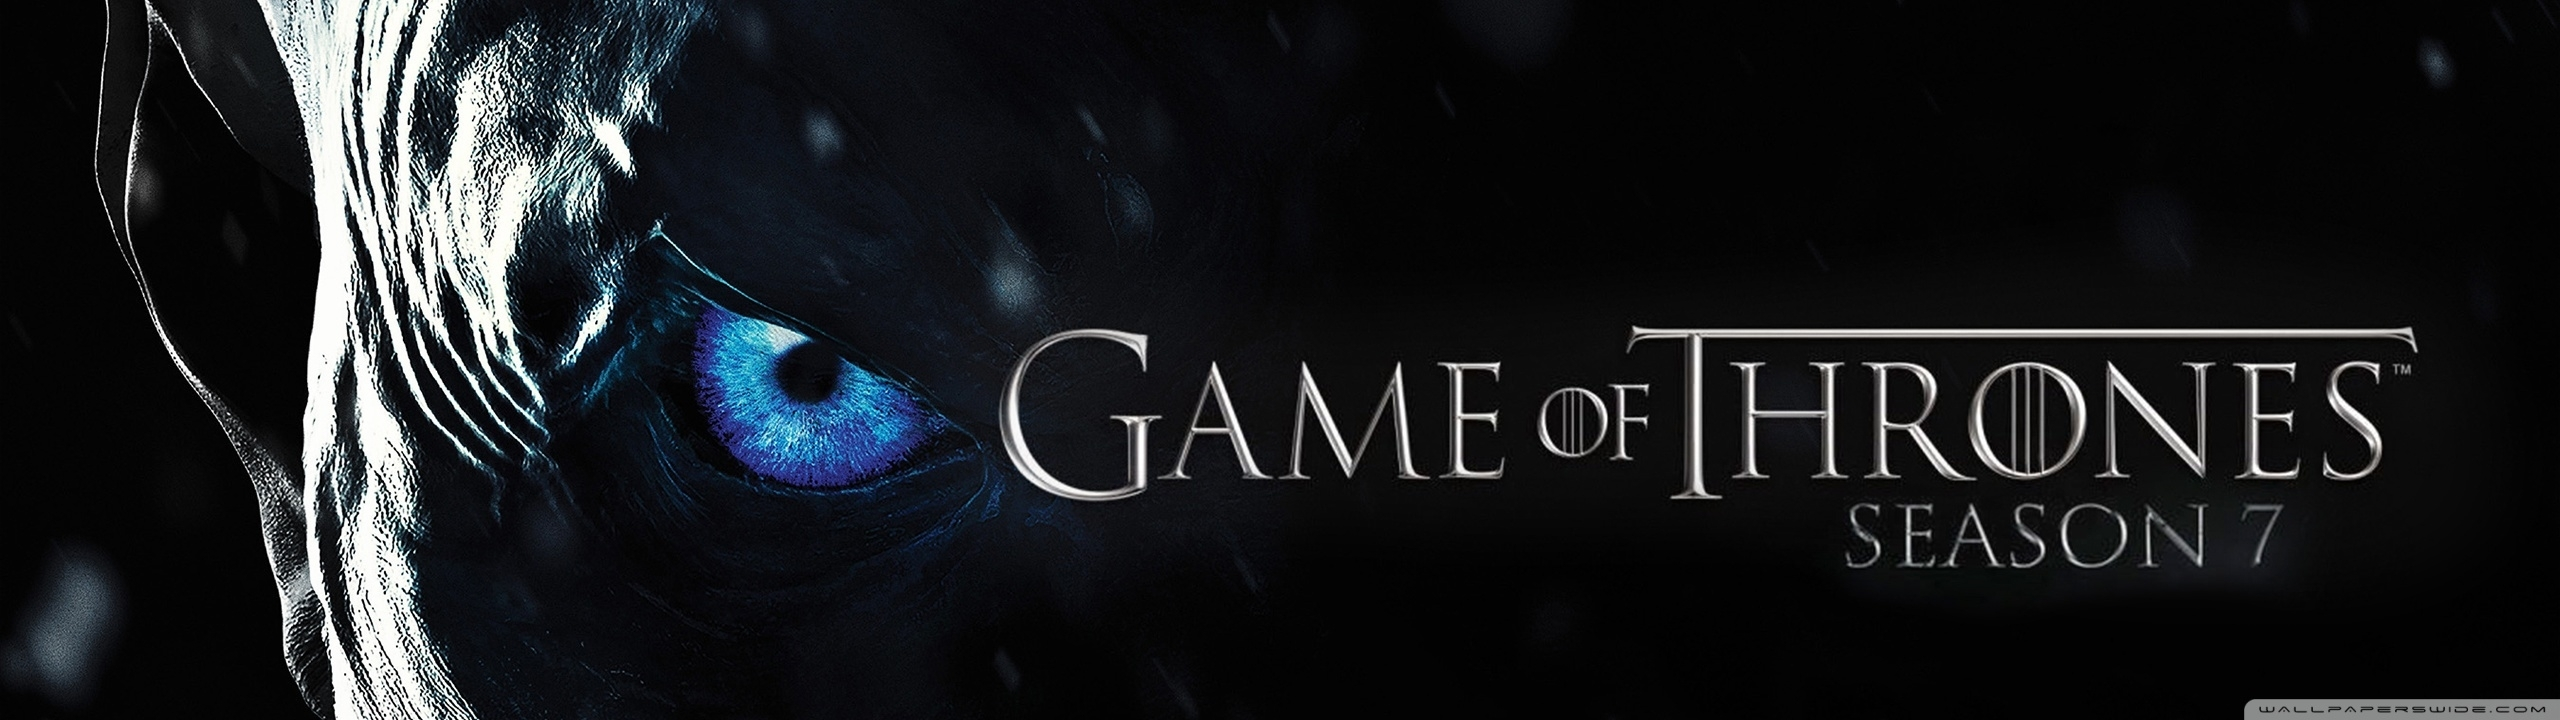 10 Most Popular Game Of Thrones Dual Monitor Wallpaper ...